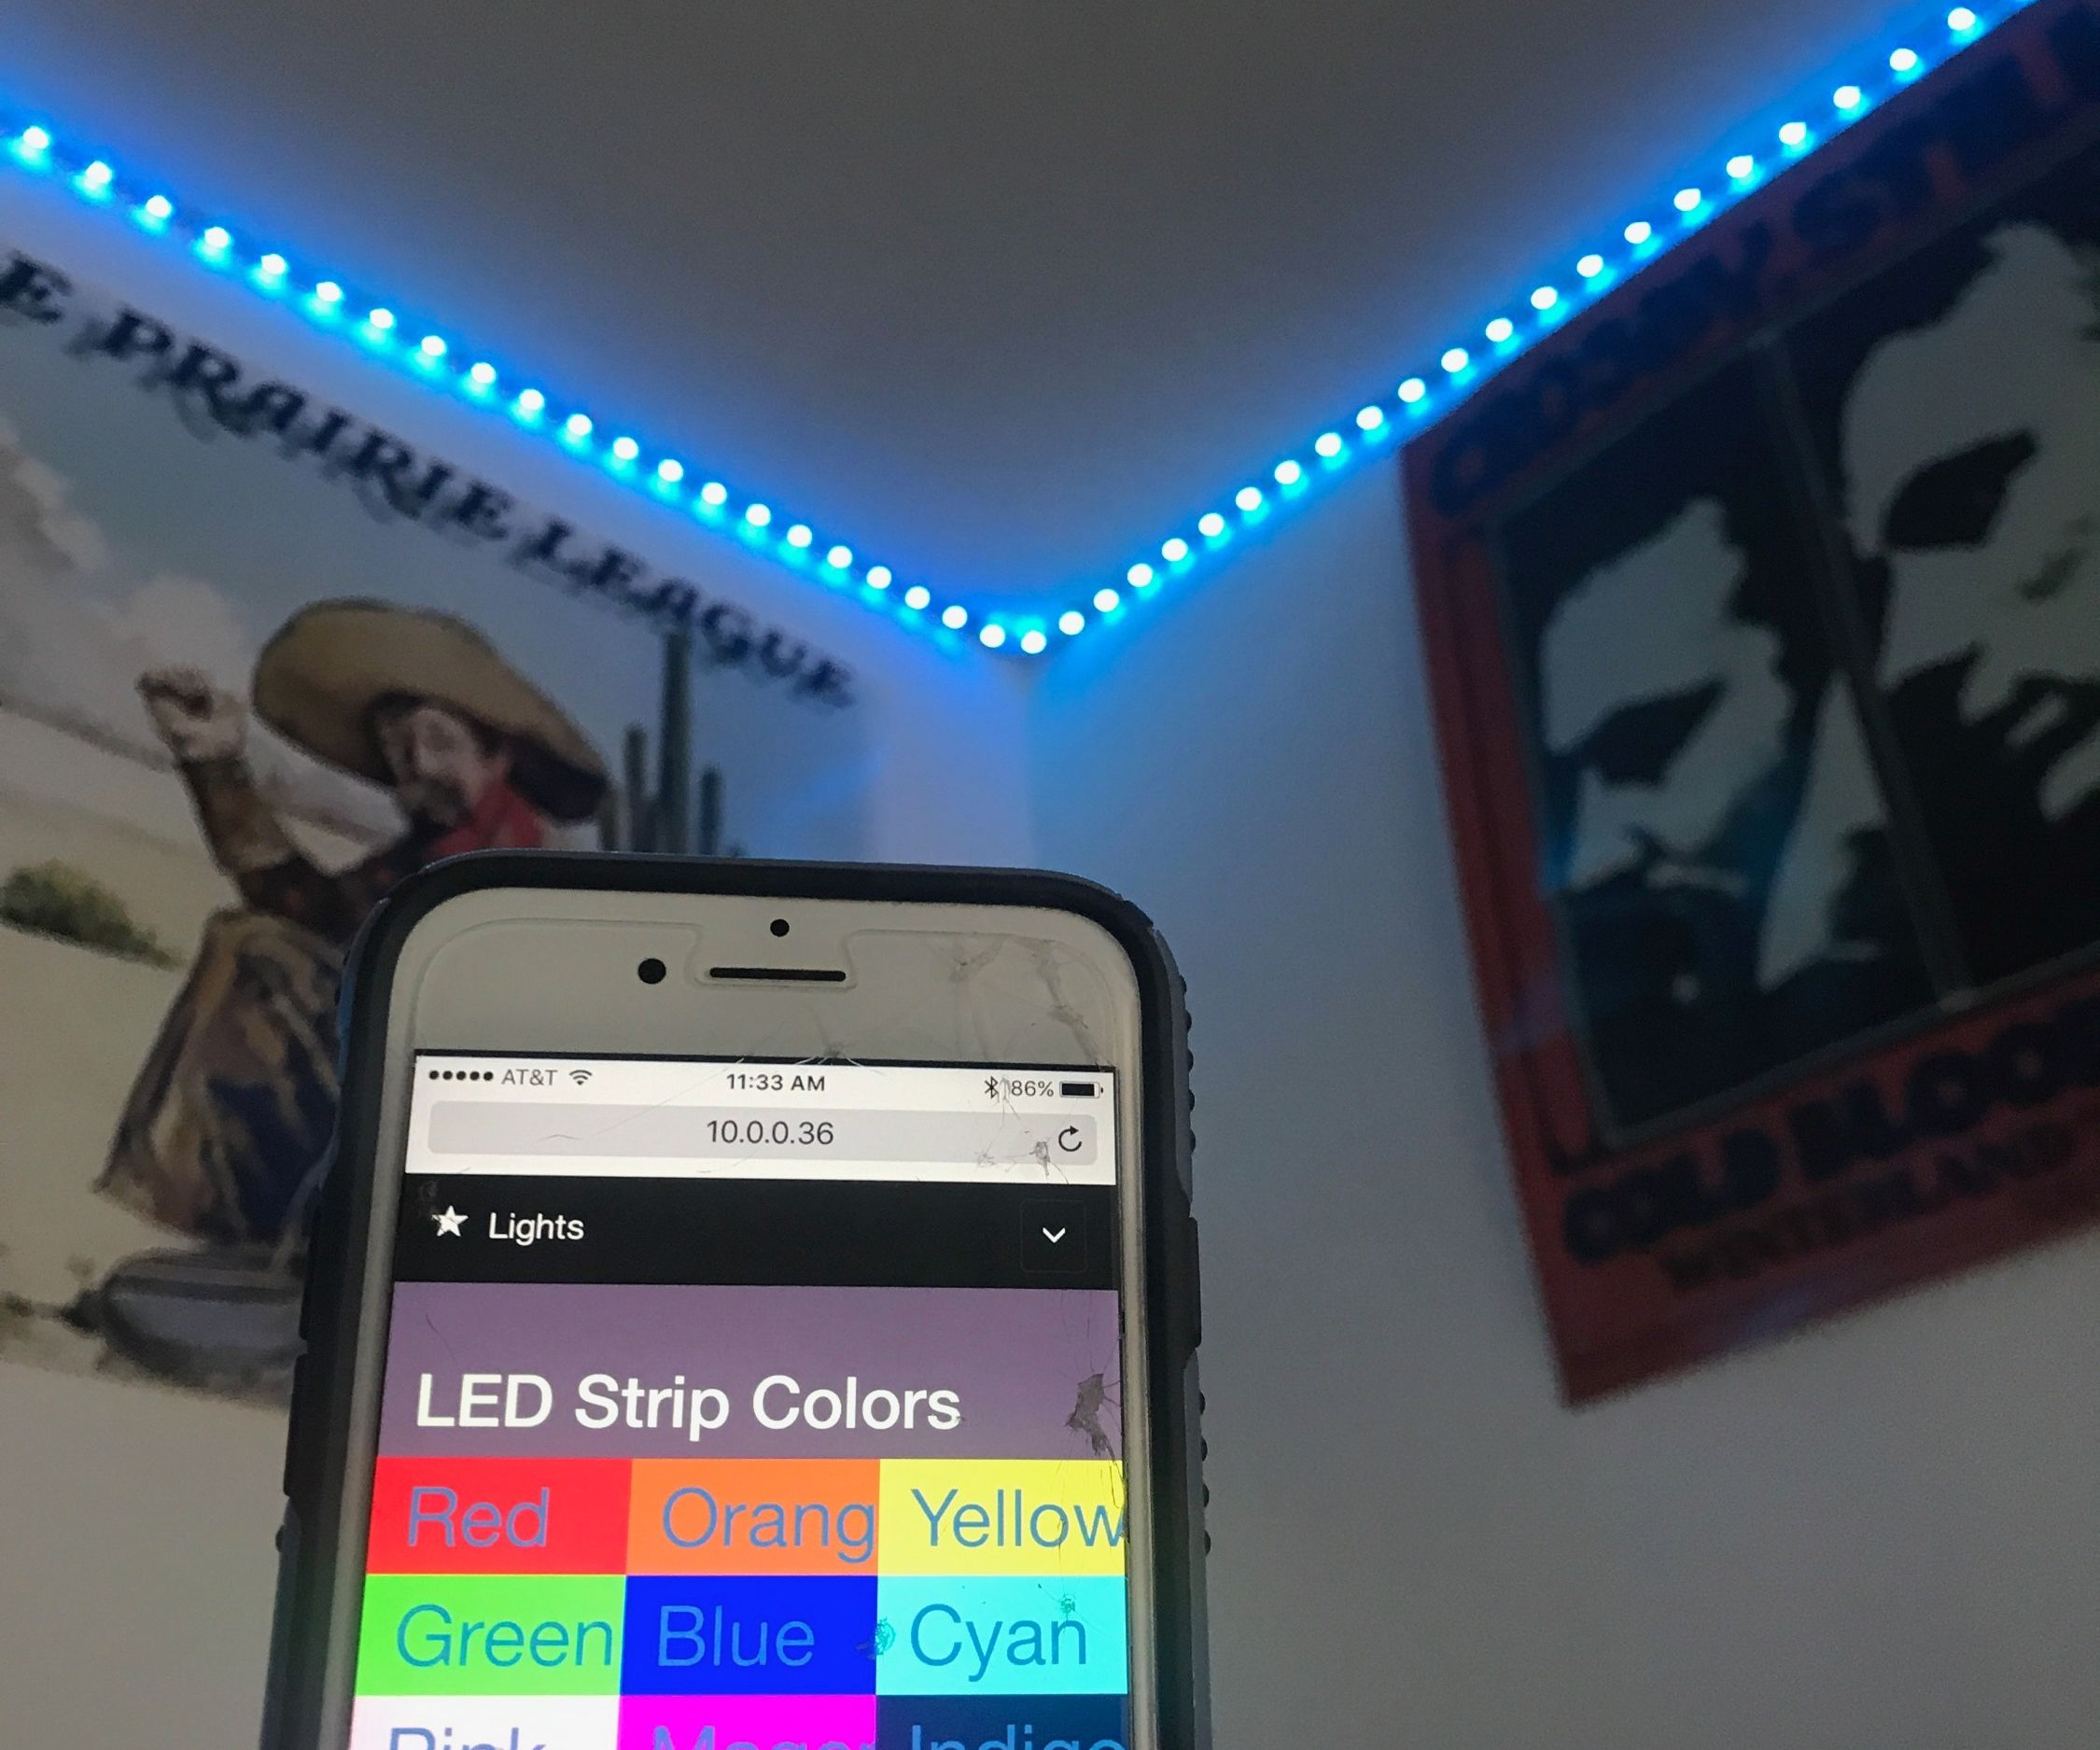 Back to School LED Strip Automation